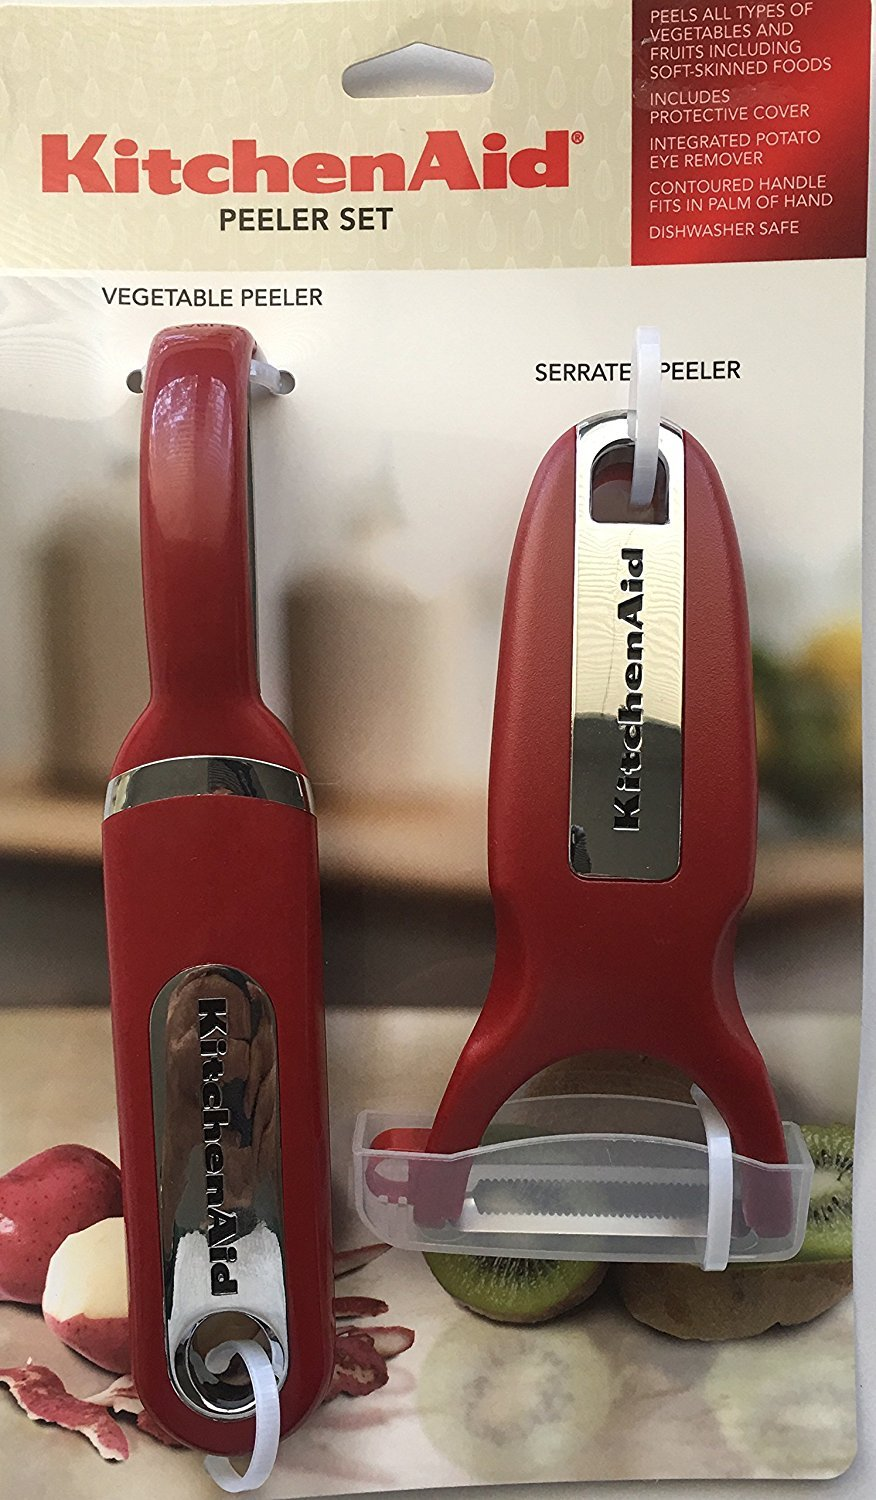 KitchenAid Classic 2-pc Handheld Peeler Set: Vegetable Peeler and Serrated Peeler, Red